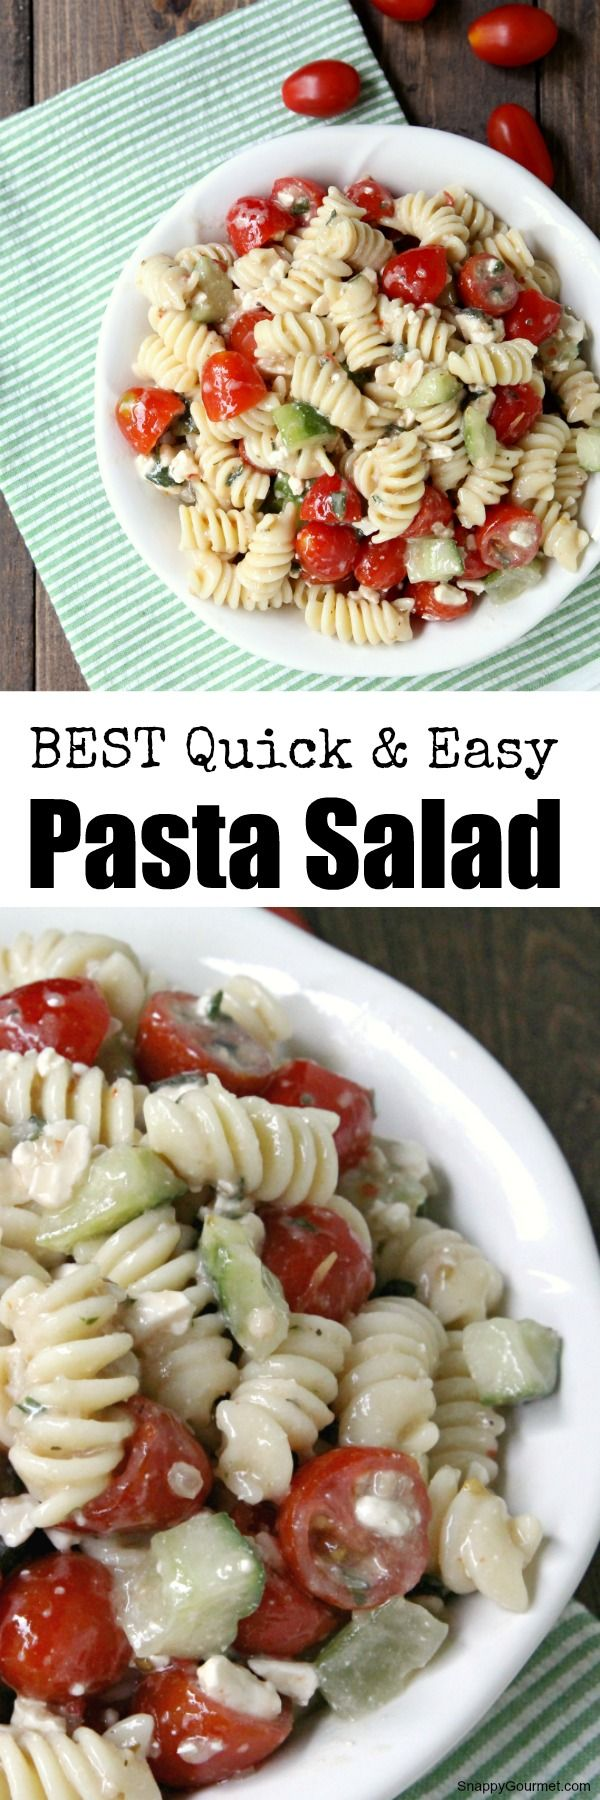 1000 Images About Perfect Picnic Salads 2 On Pinterest